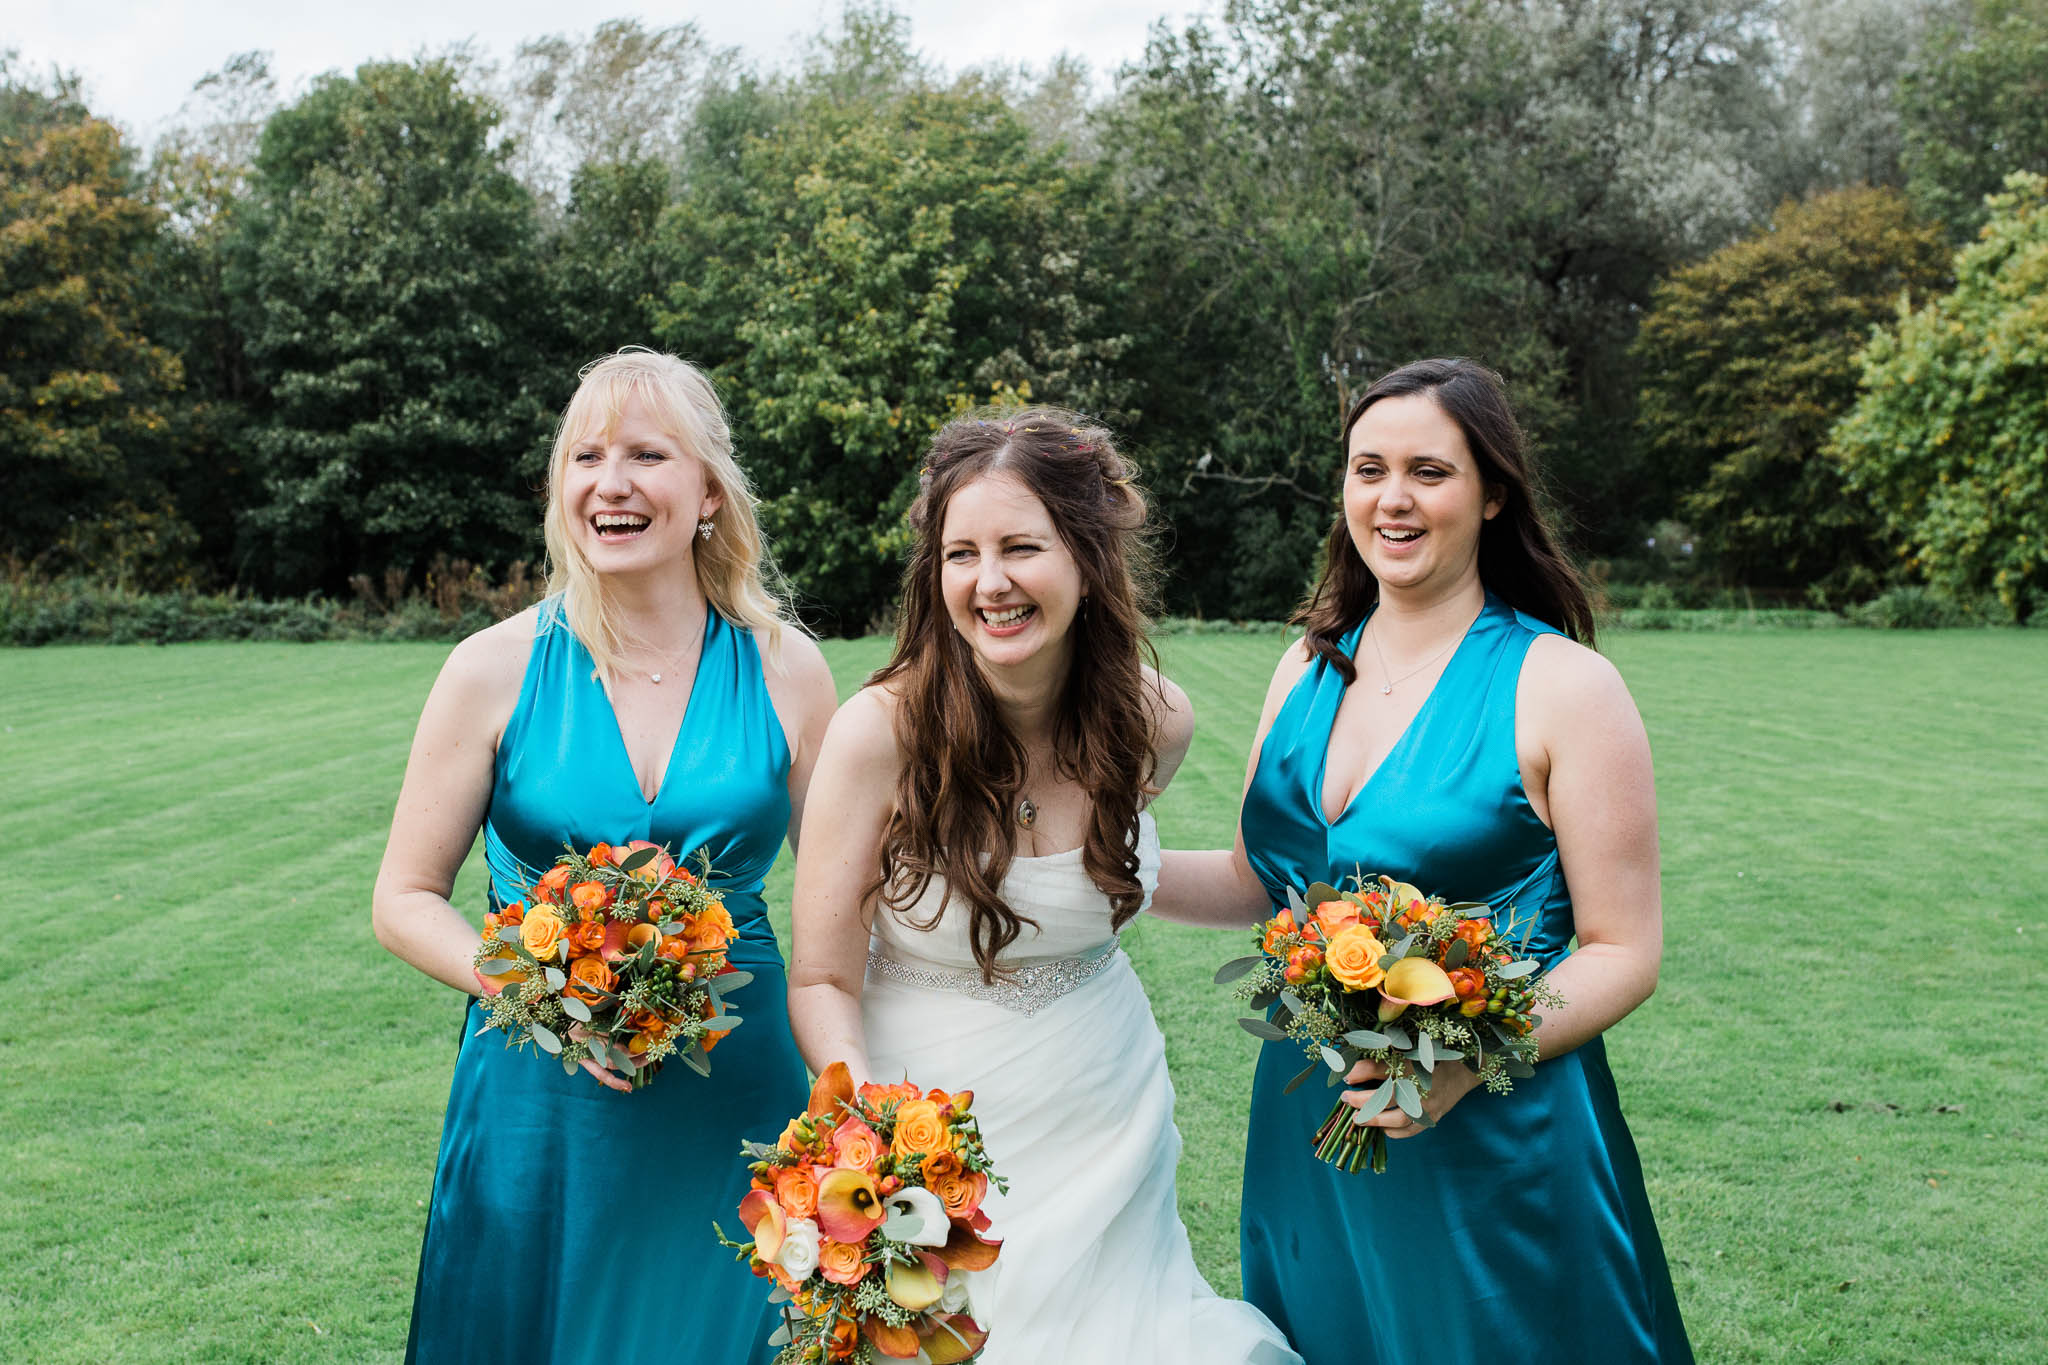 bride laughing with bridesmaids at autumn wedding